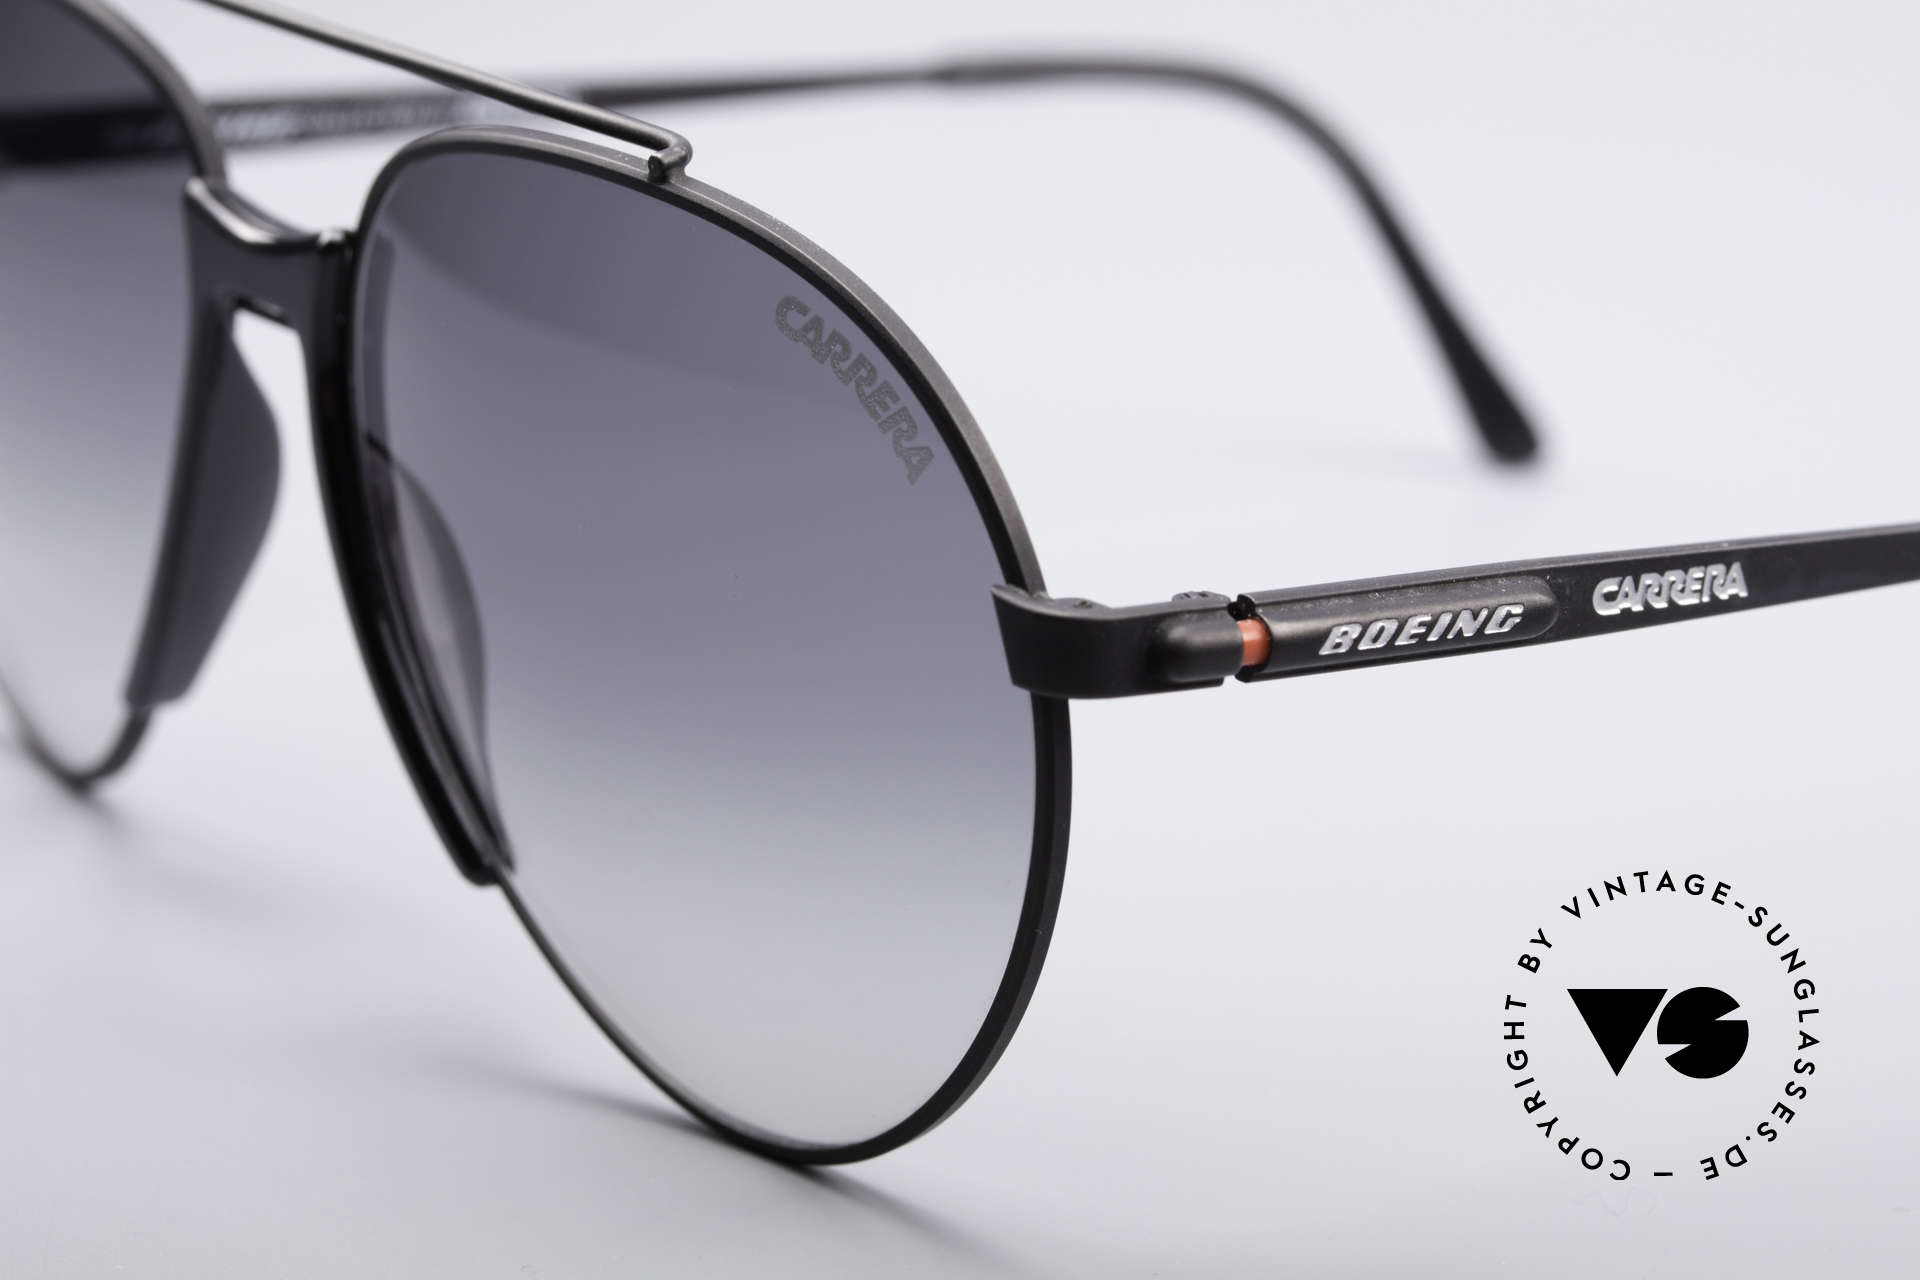 Boeing 5734 Old Glasses 80's Pilots Shades, high-end quality and simply precious (collector's item), Made for Men and Women